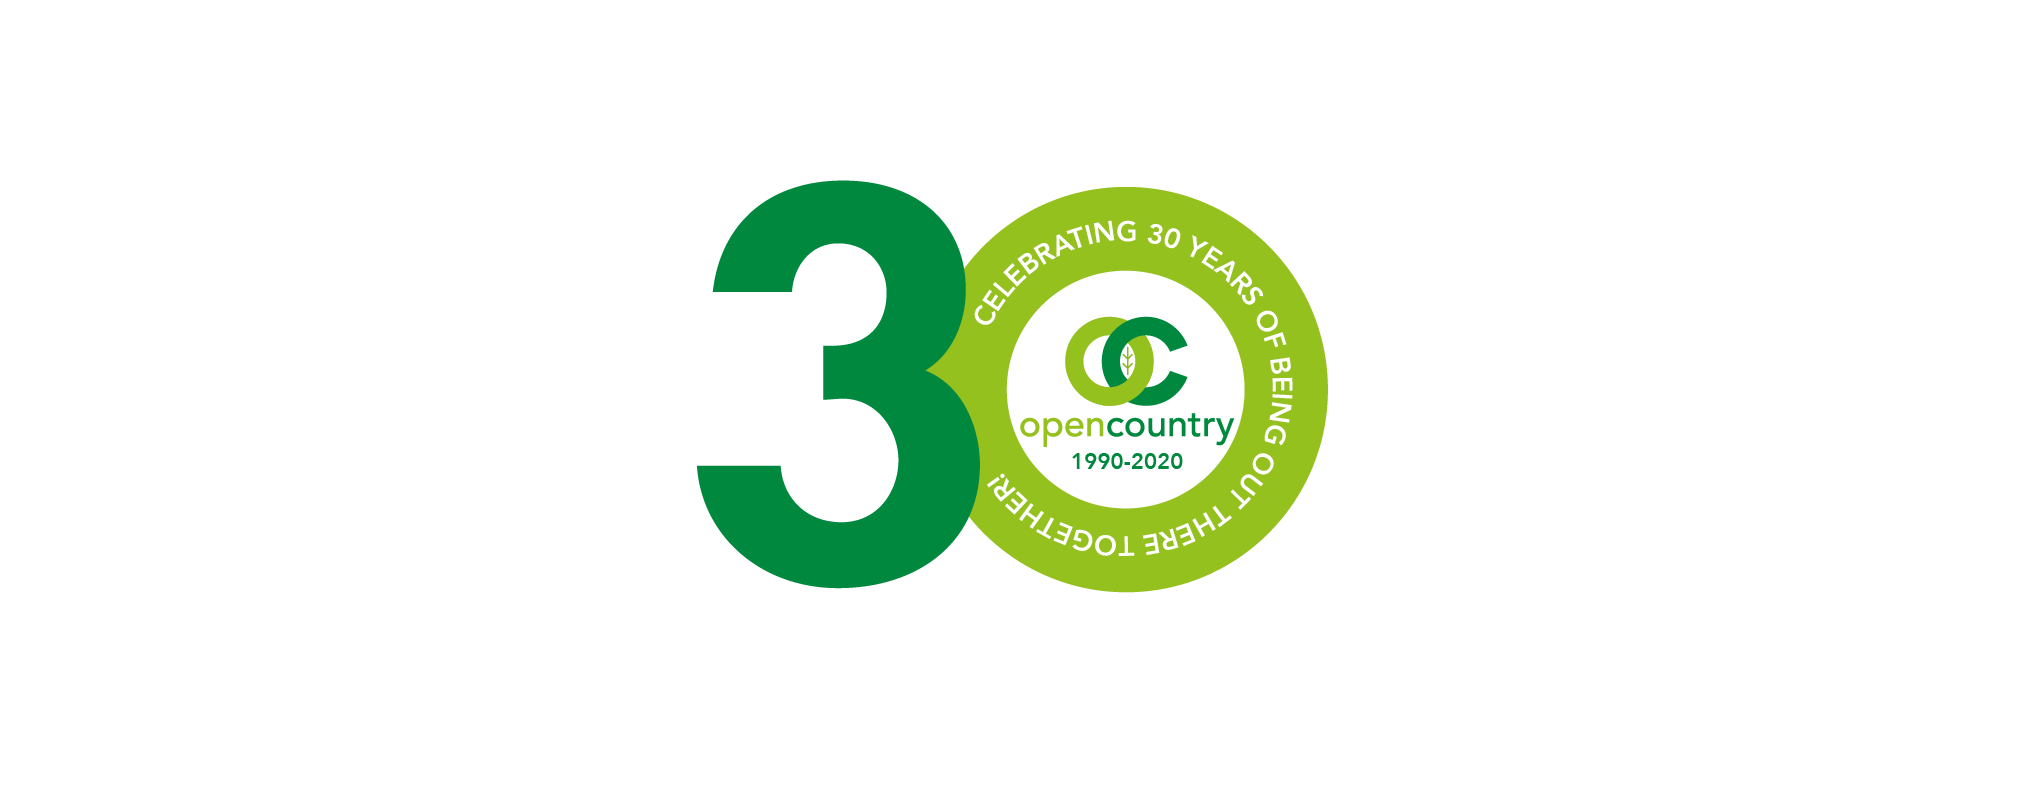 Open Country's 30th anniversary logo